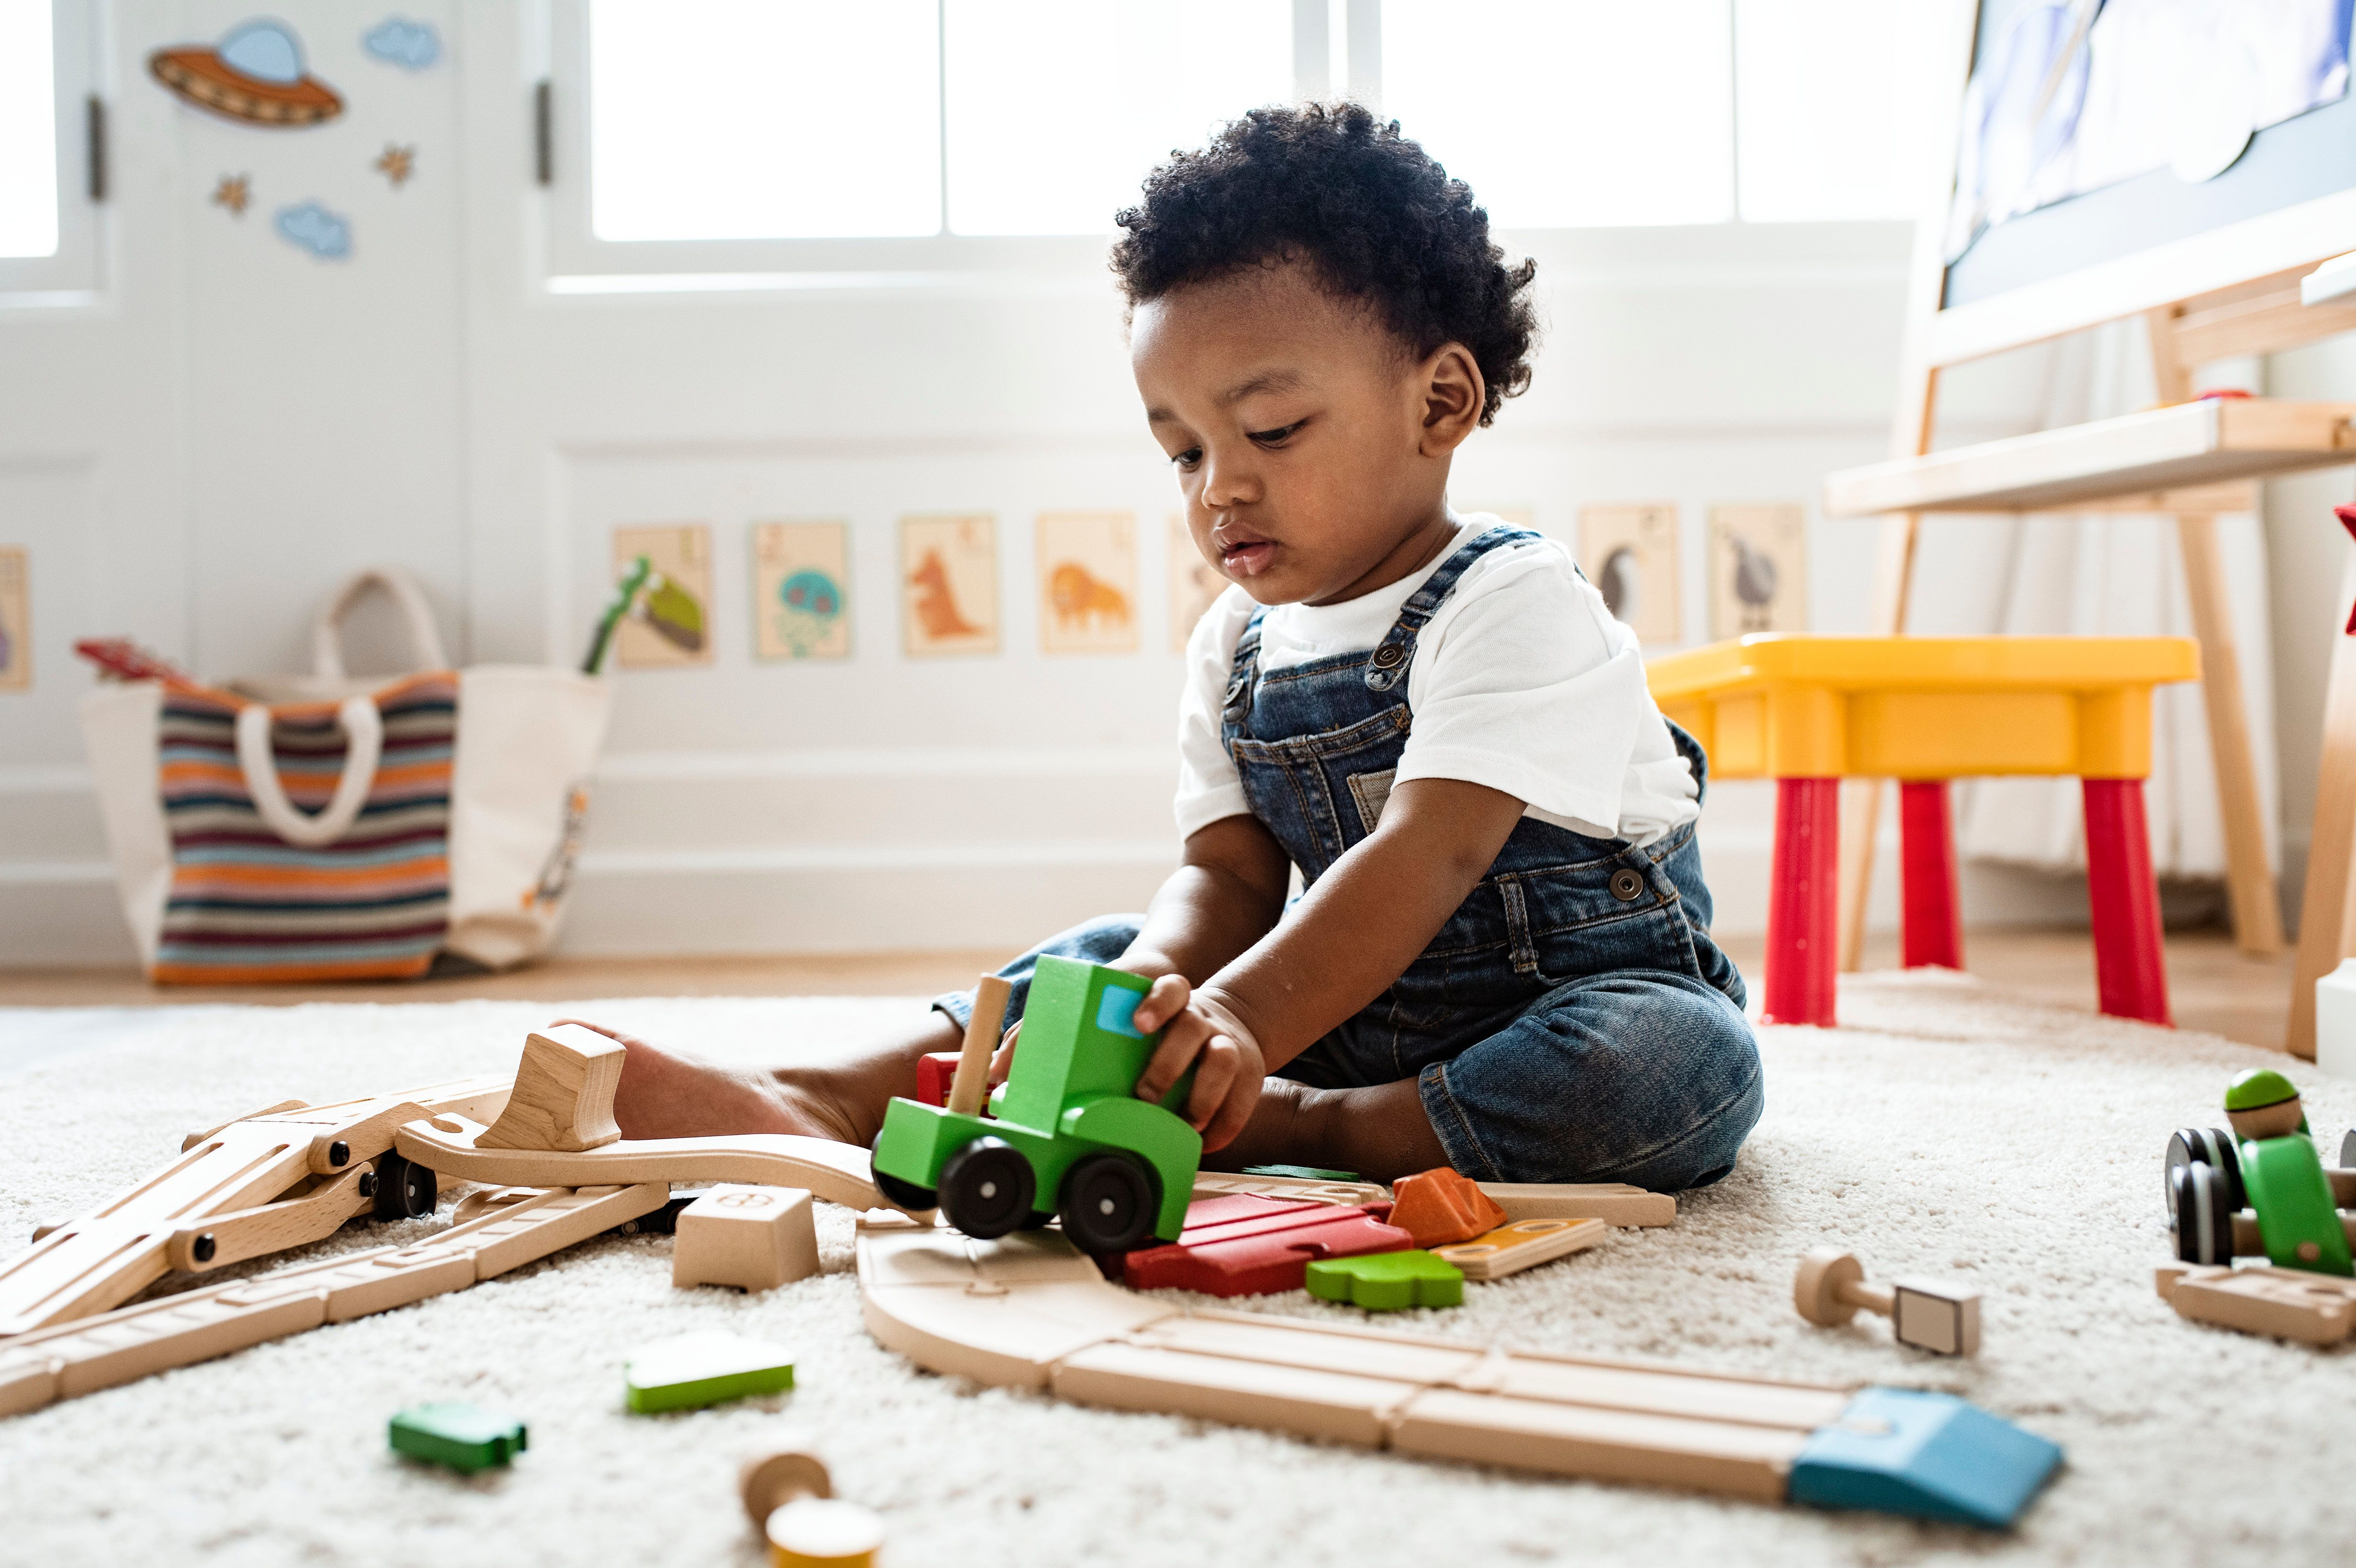 Childcare is unaffordable across the U.S. but Washington, D.C., could well become a model of how to make it much more accessi